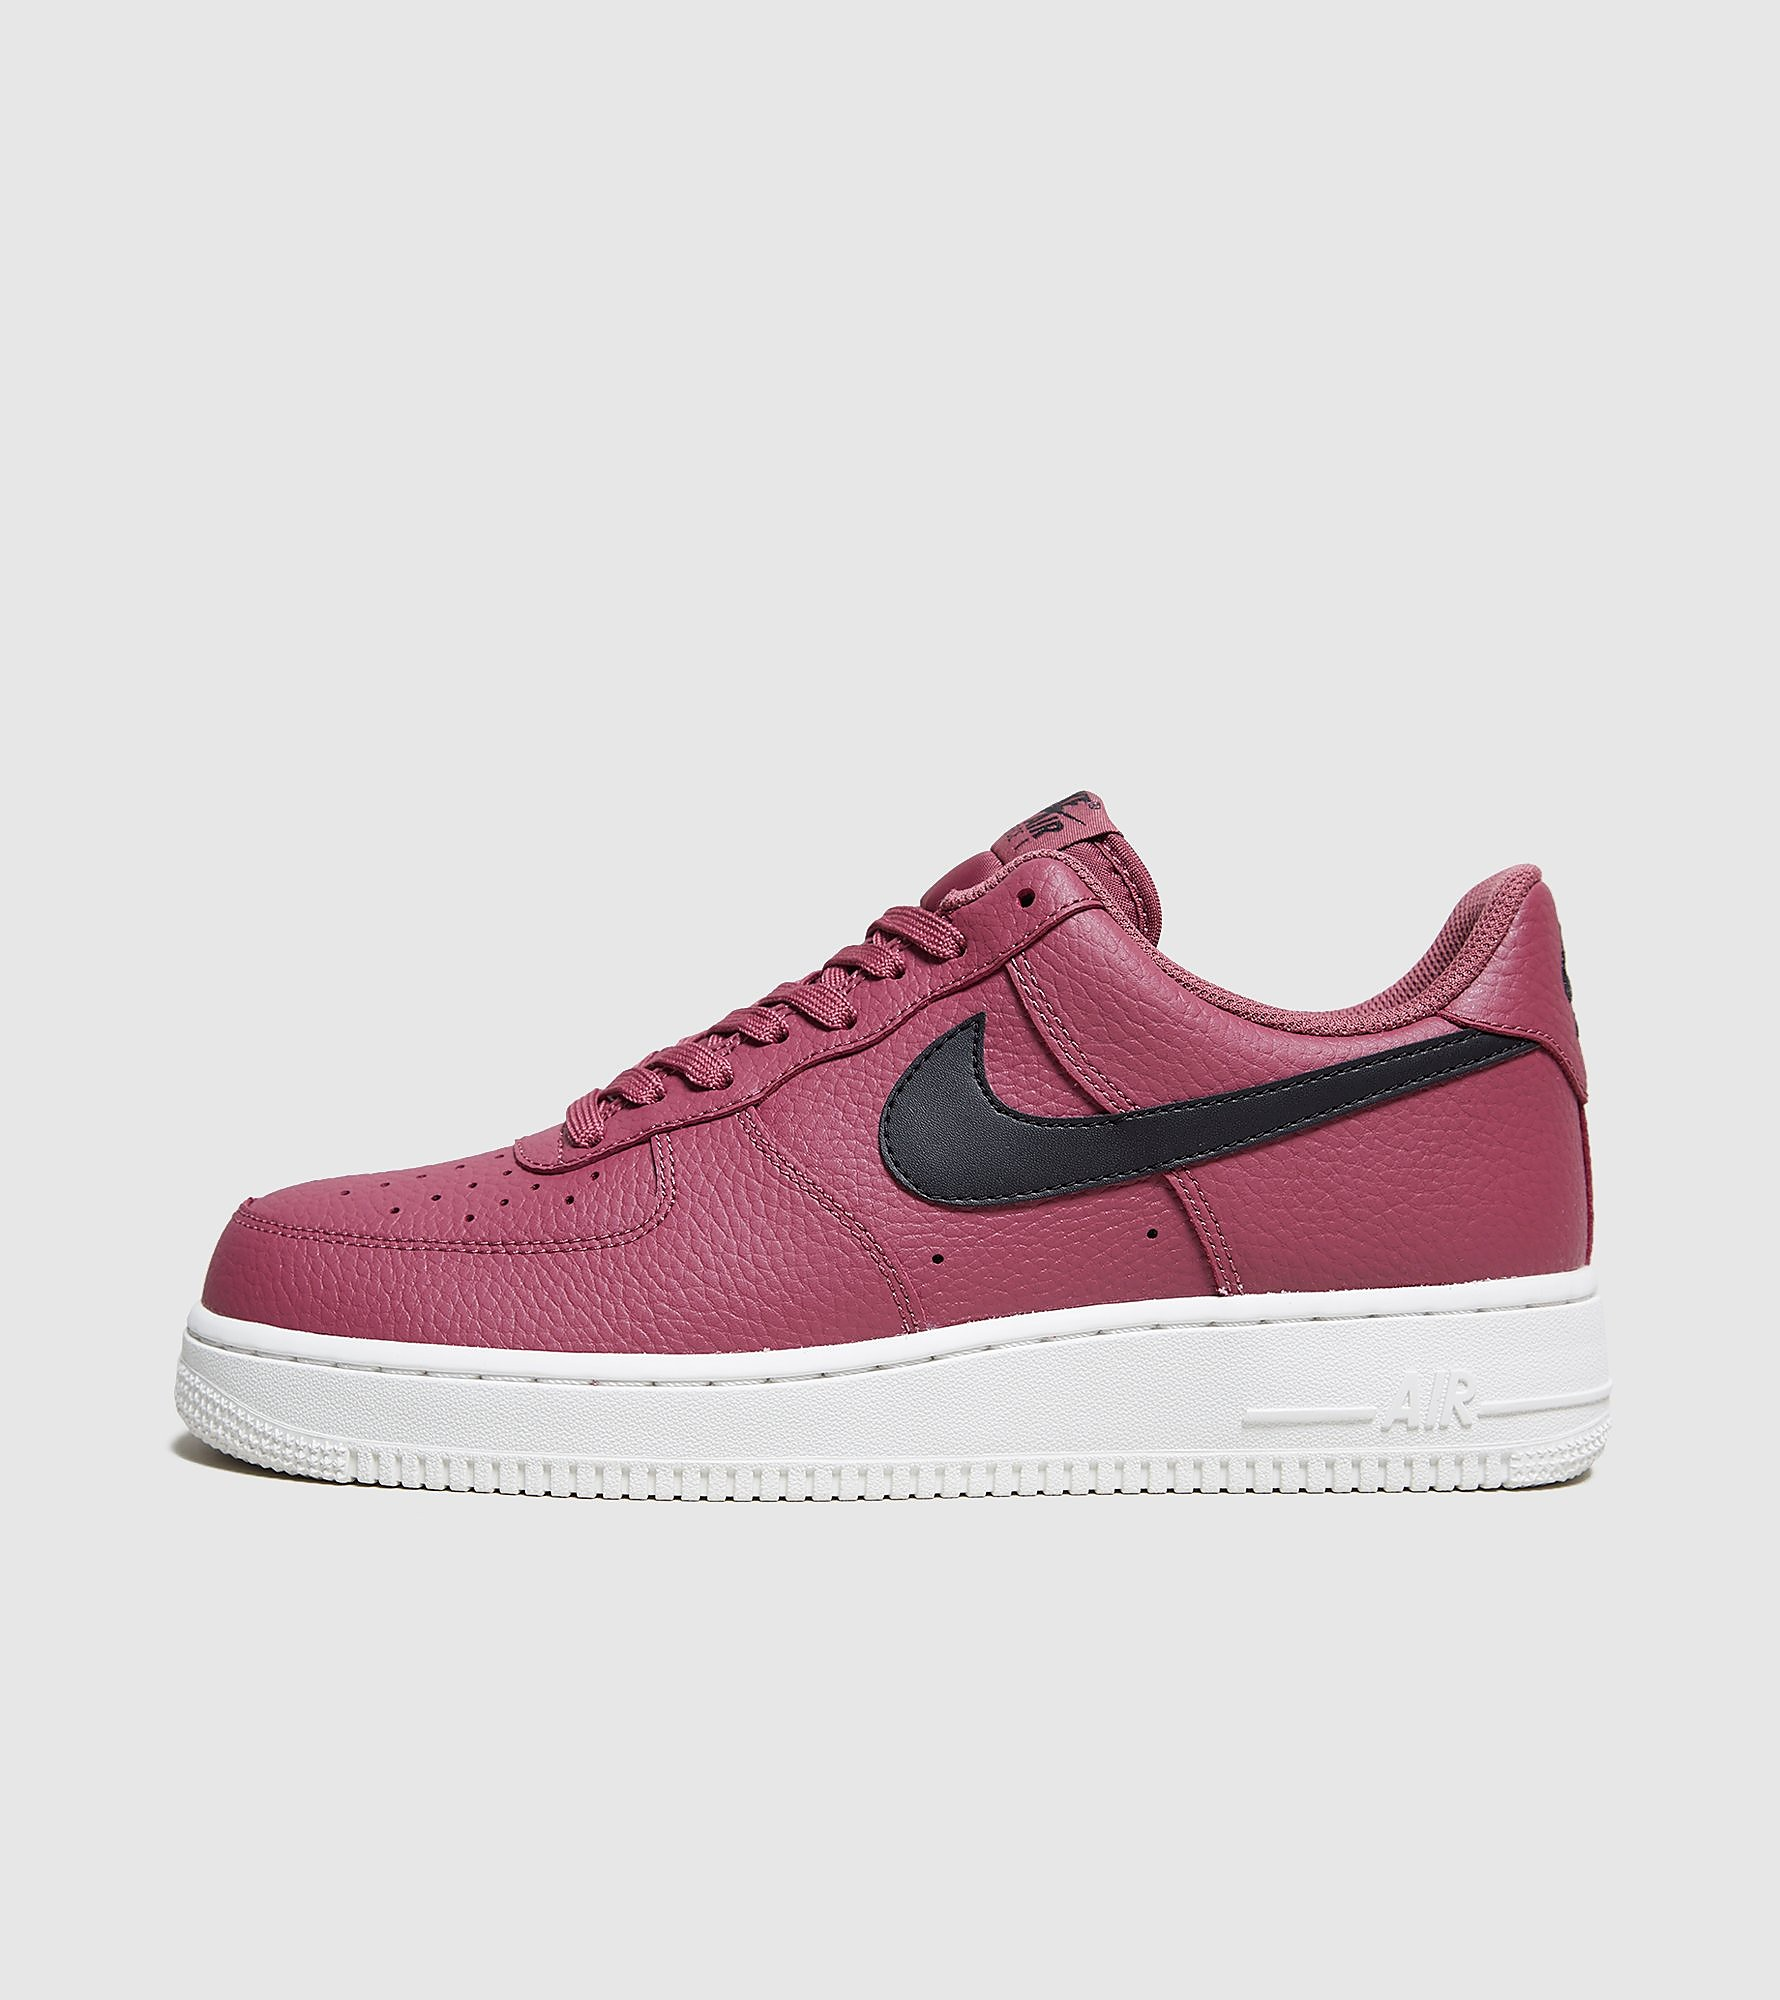 Nike Air Force 1 Low, rojo/blanco